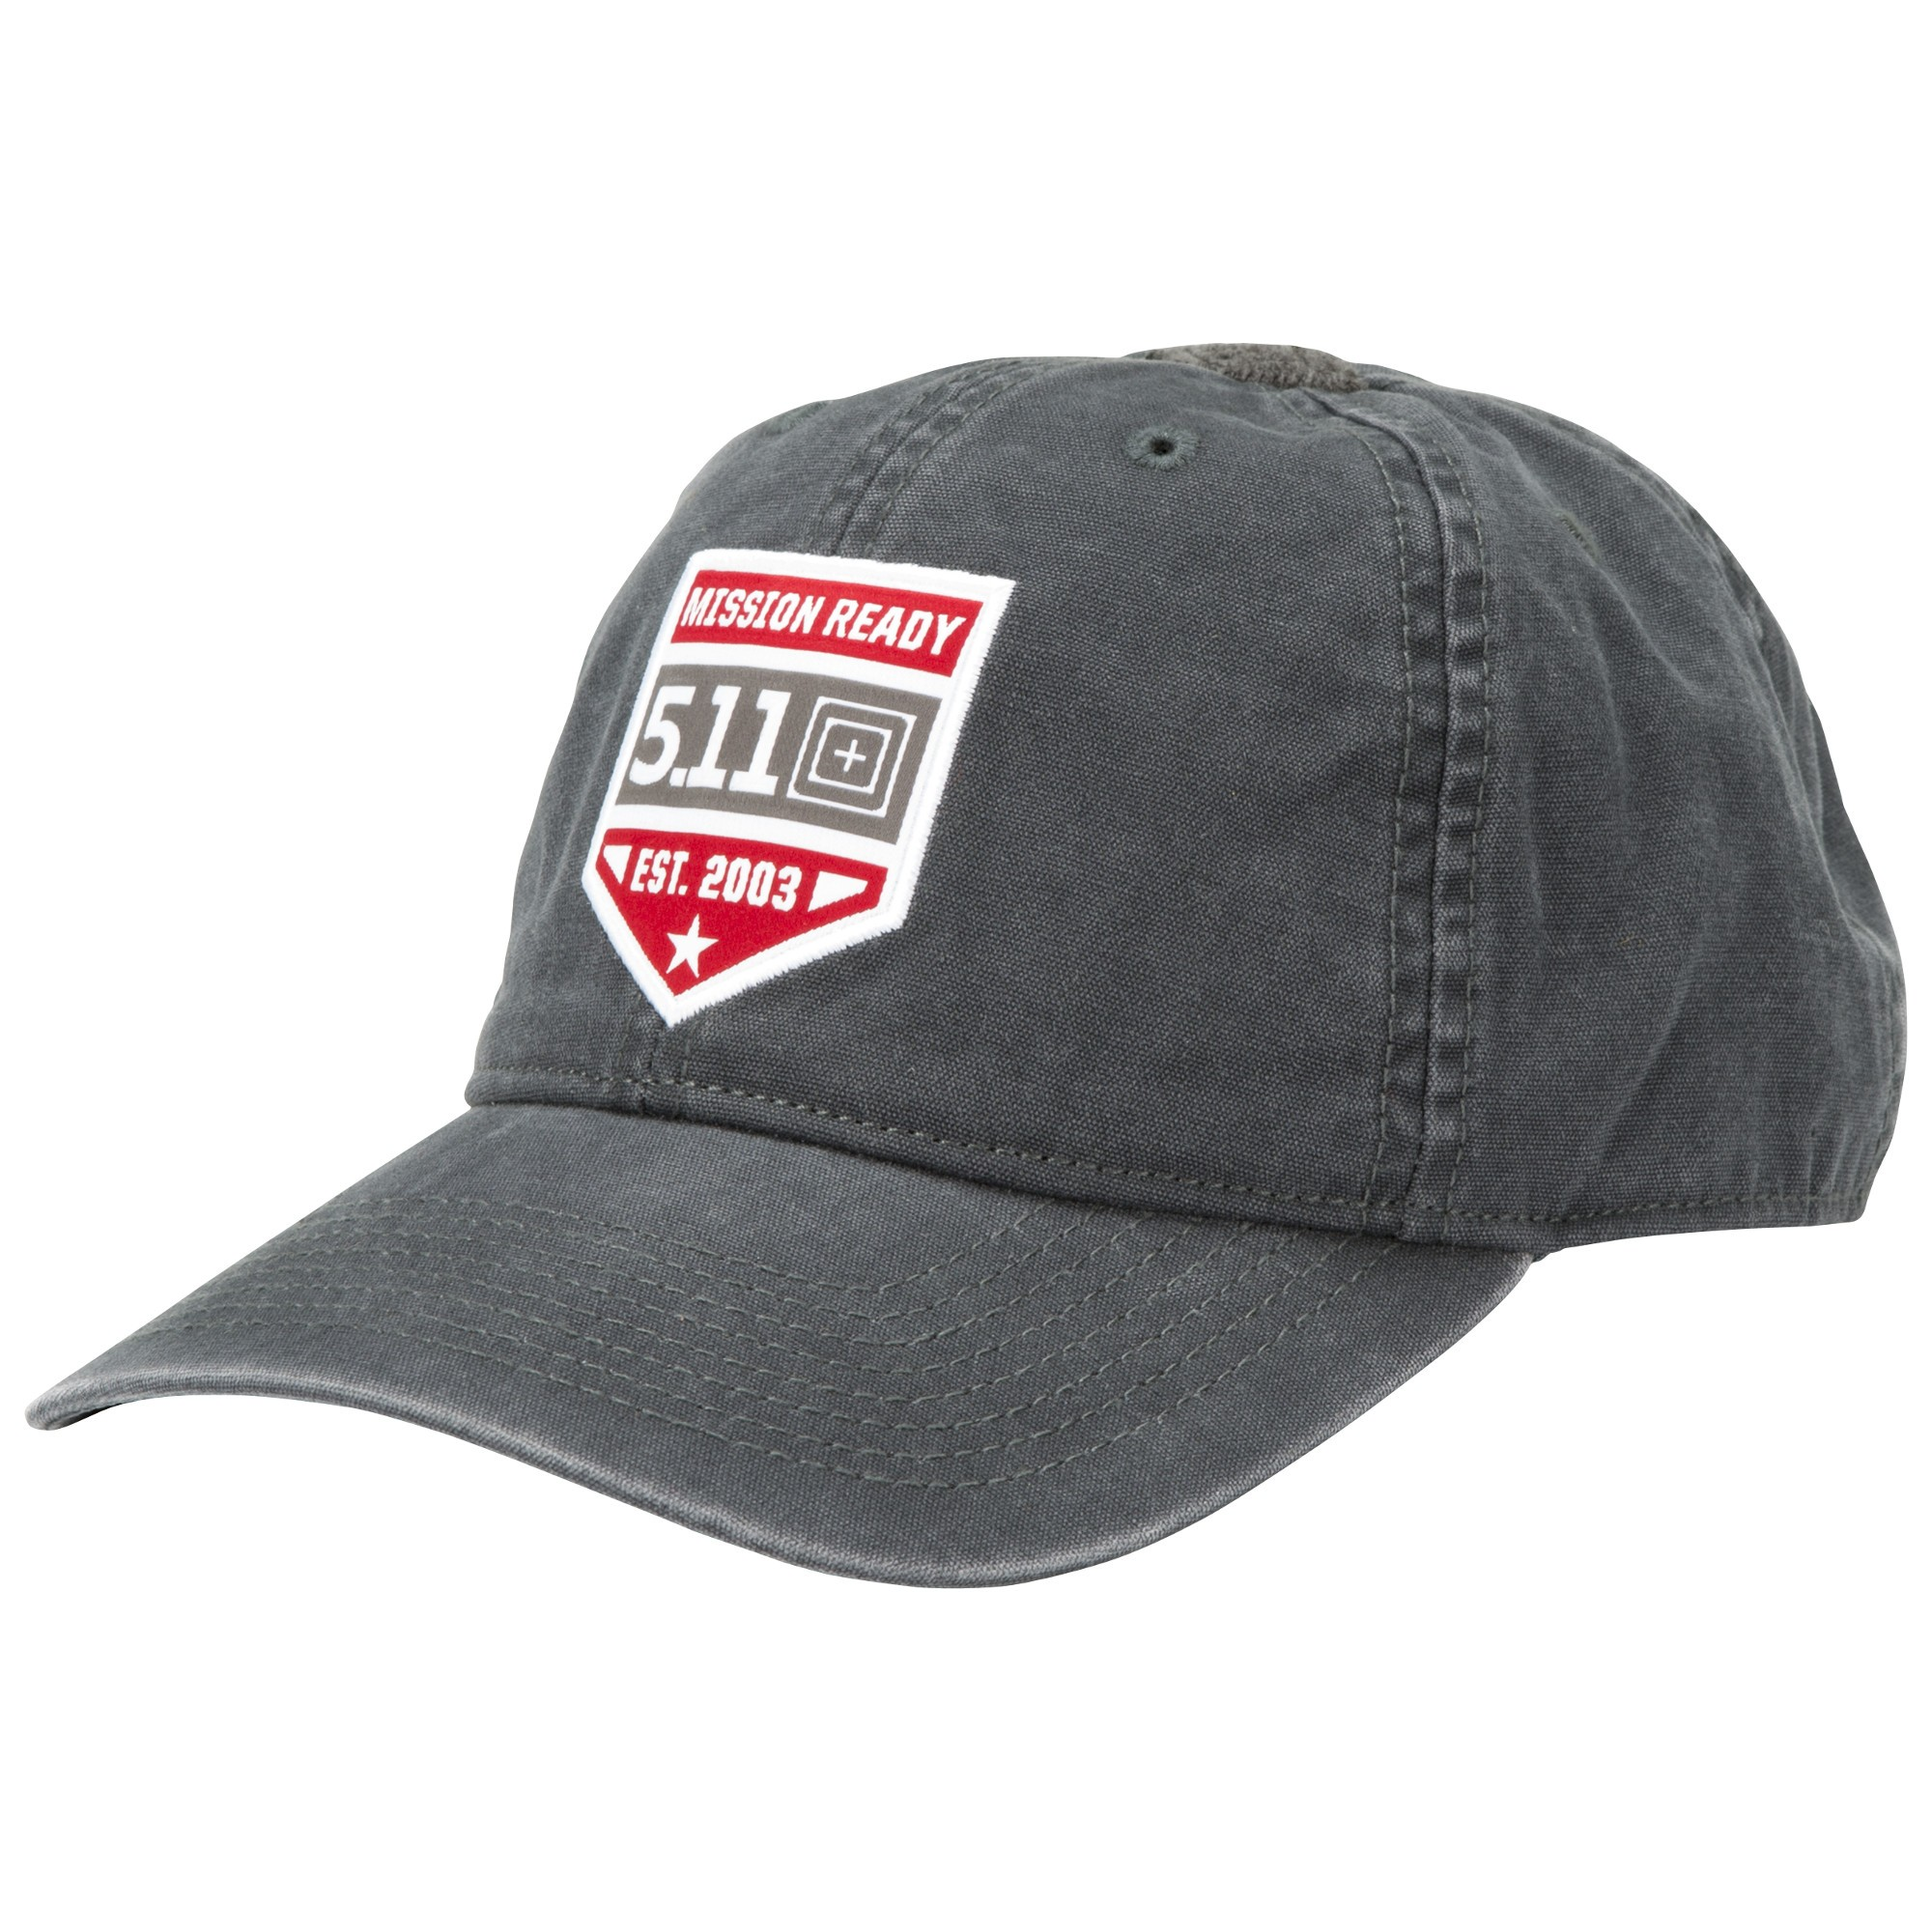 כובע טקטי שחור 5.11 MISSION READY™ CAP Black